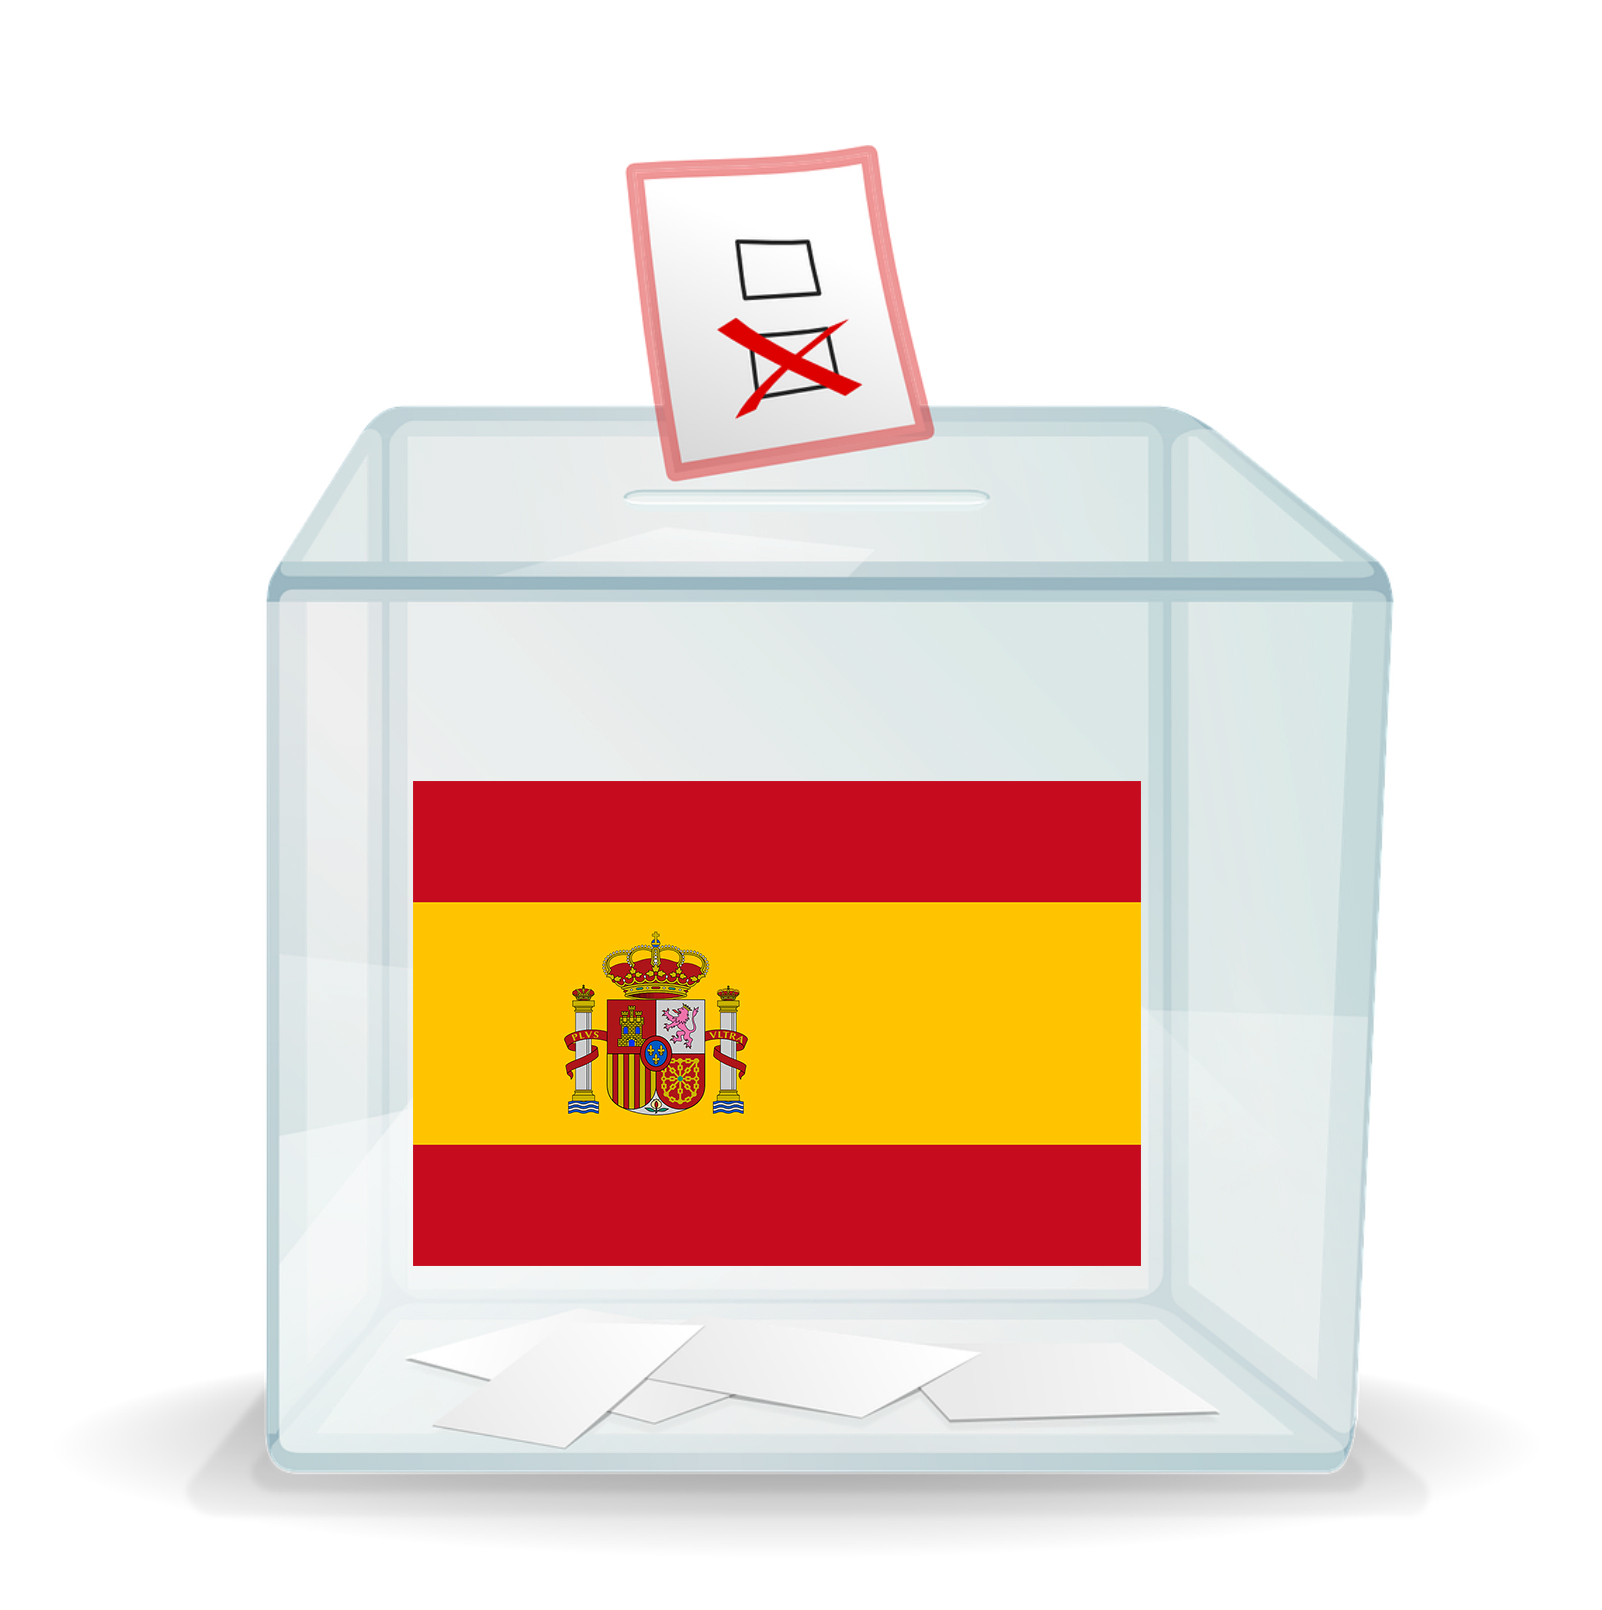 A ballot box with the flag of Spain on the front.